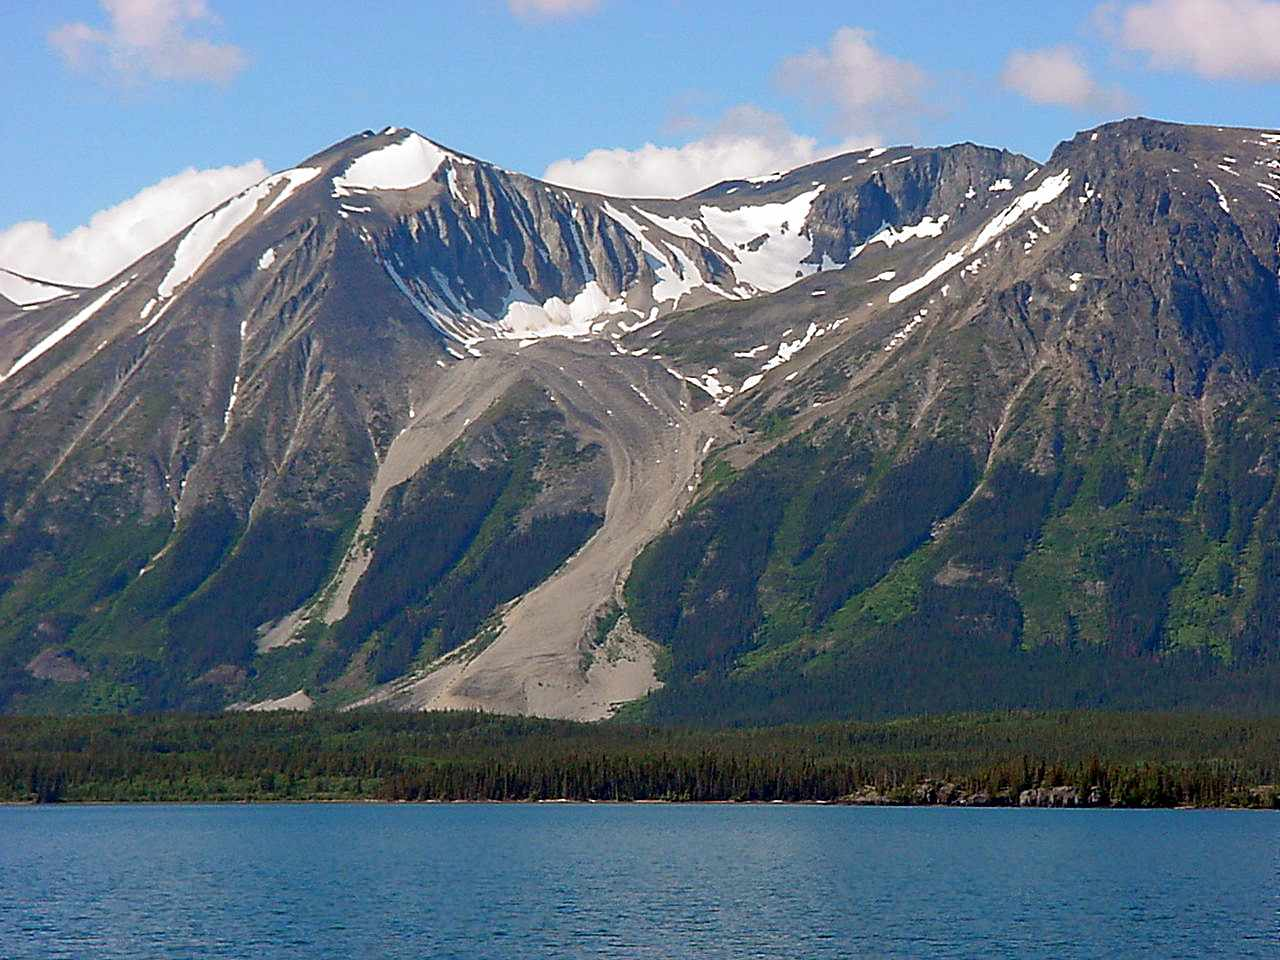 Rock glaciers can look like muddy landslides from the distance, such as the Atlin Rock Glacier in Juneau, Alaska.